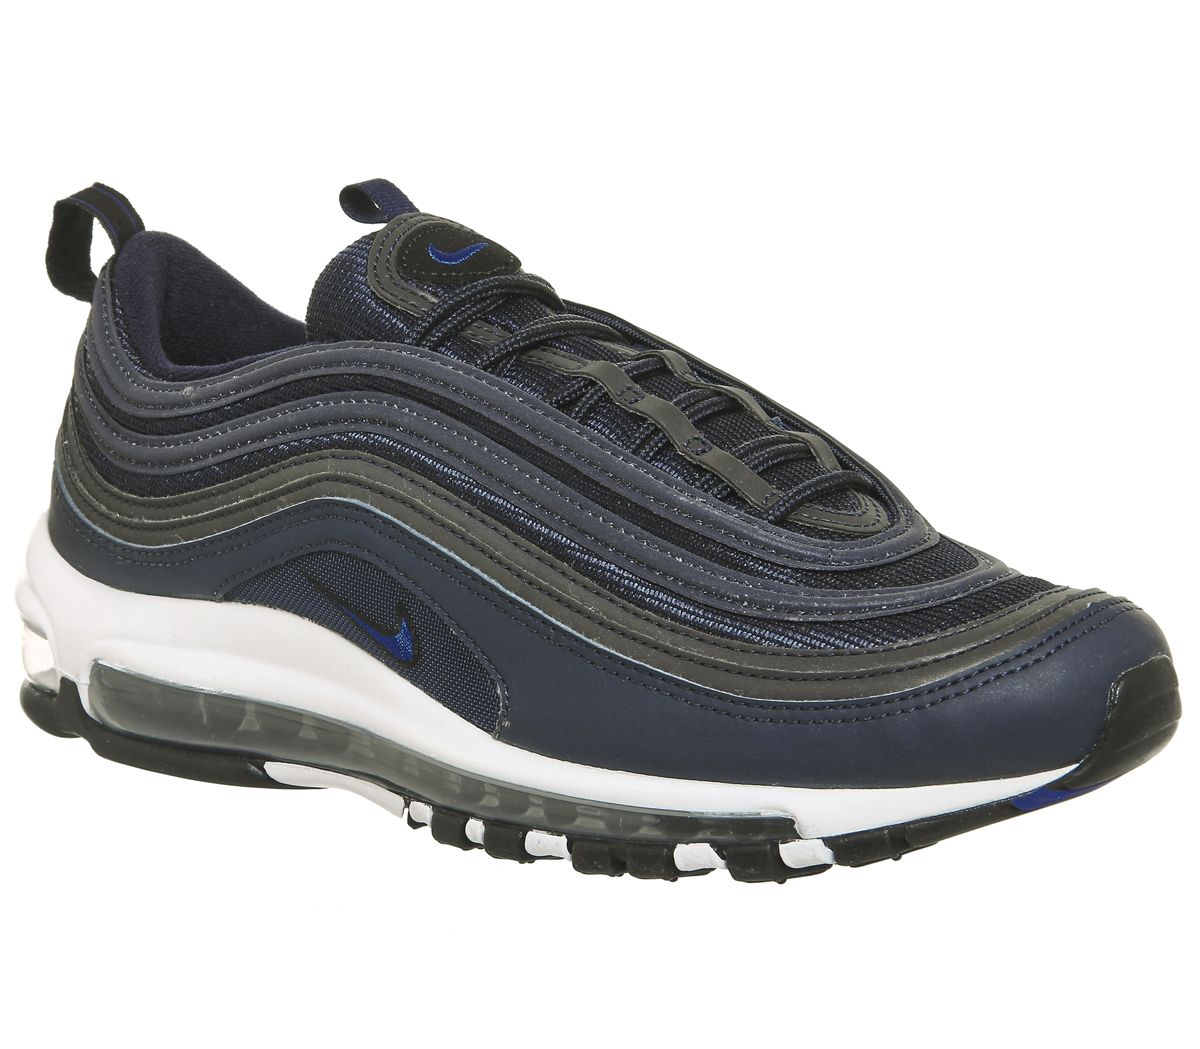 9353f3c336 Nike Air Max 97 Trainers Obsidian White Black White - Hers trainers